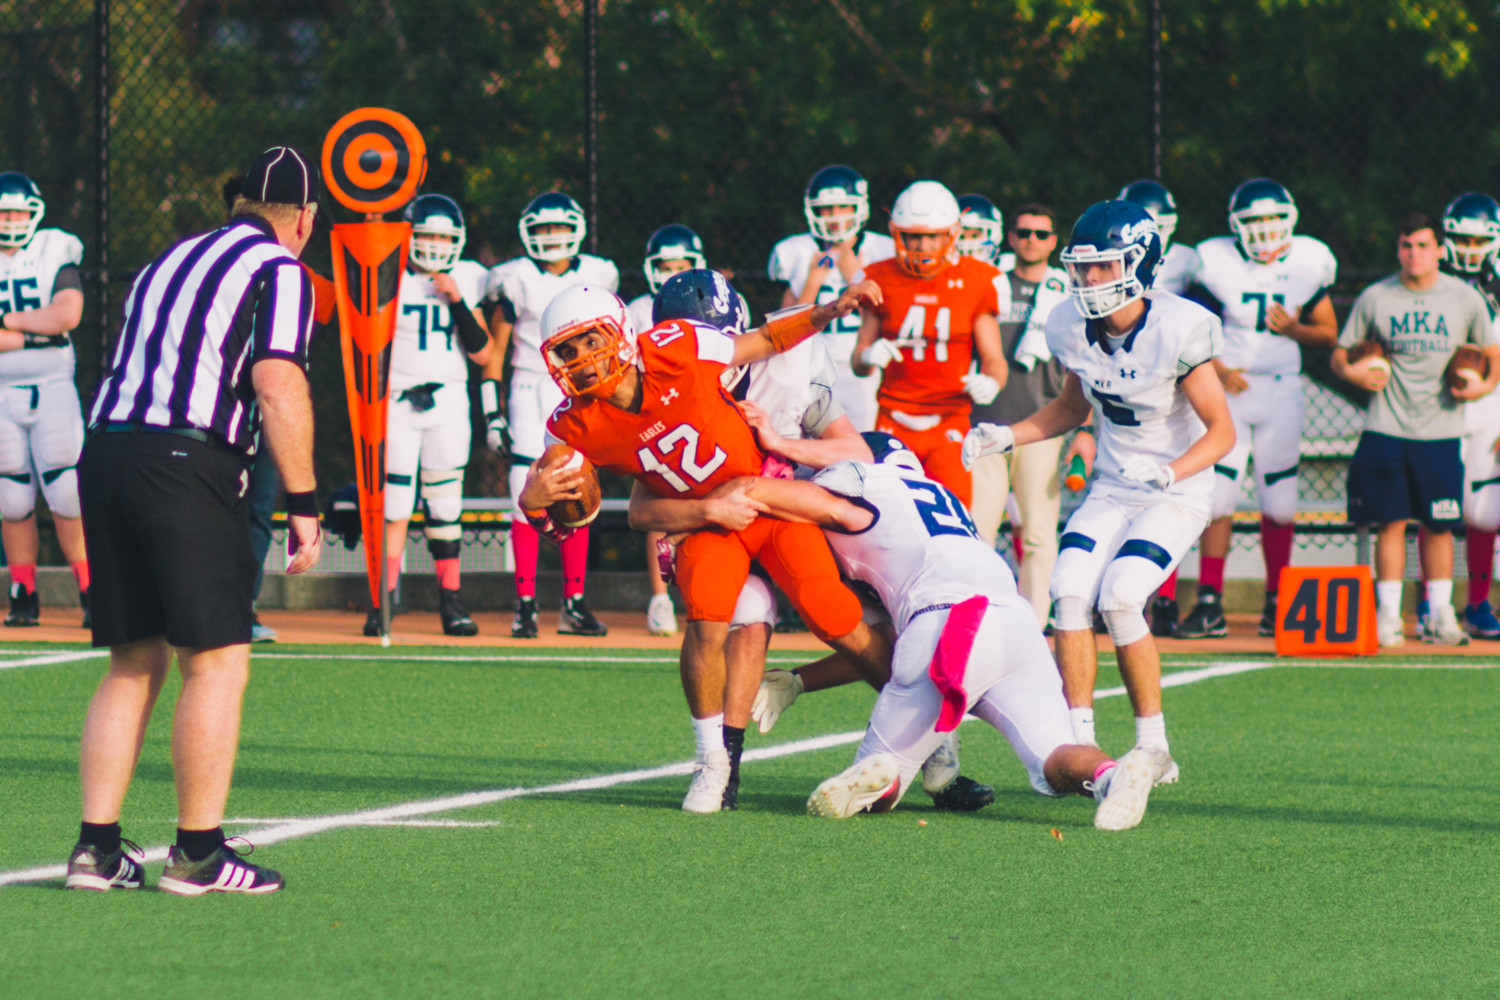 Fieldston quarterback Jesse Cooper-Leary (12), who threw for a touchdown, picks up a few yards on a scramble during the Eagles' convincing victory over Montclair Kimberley Academy.